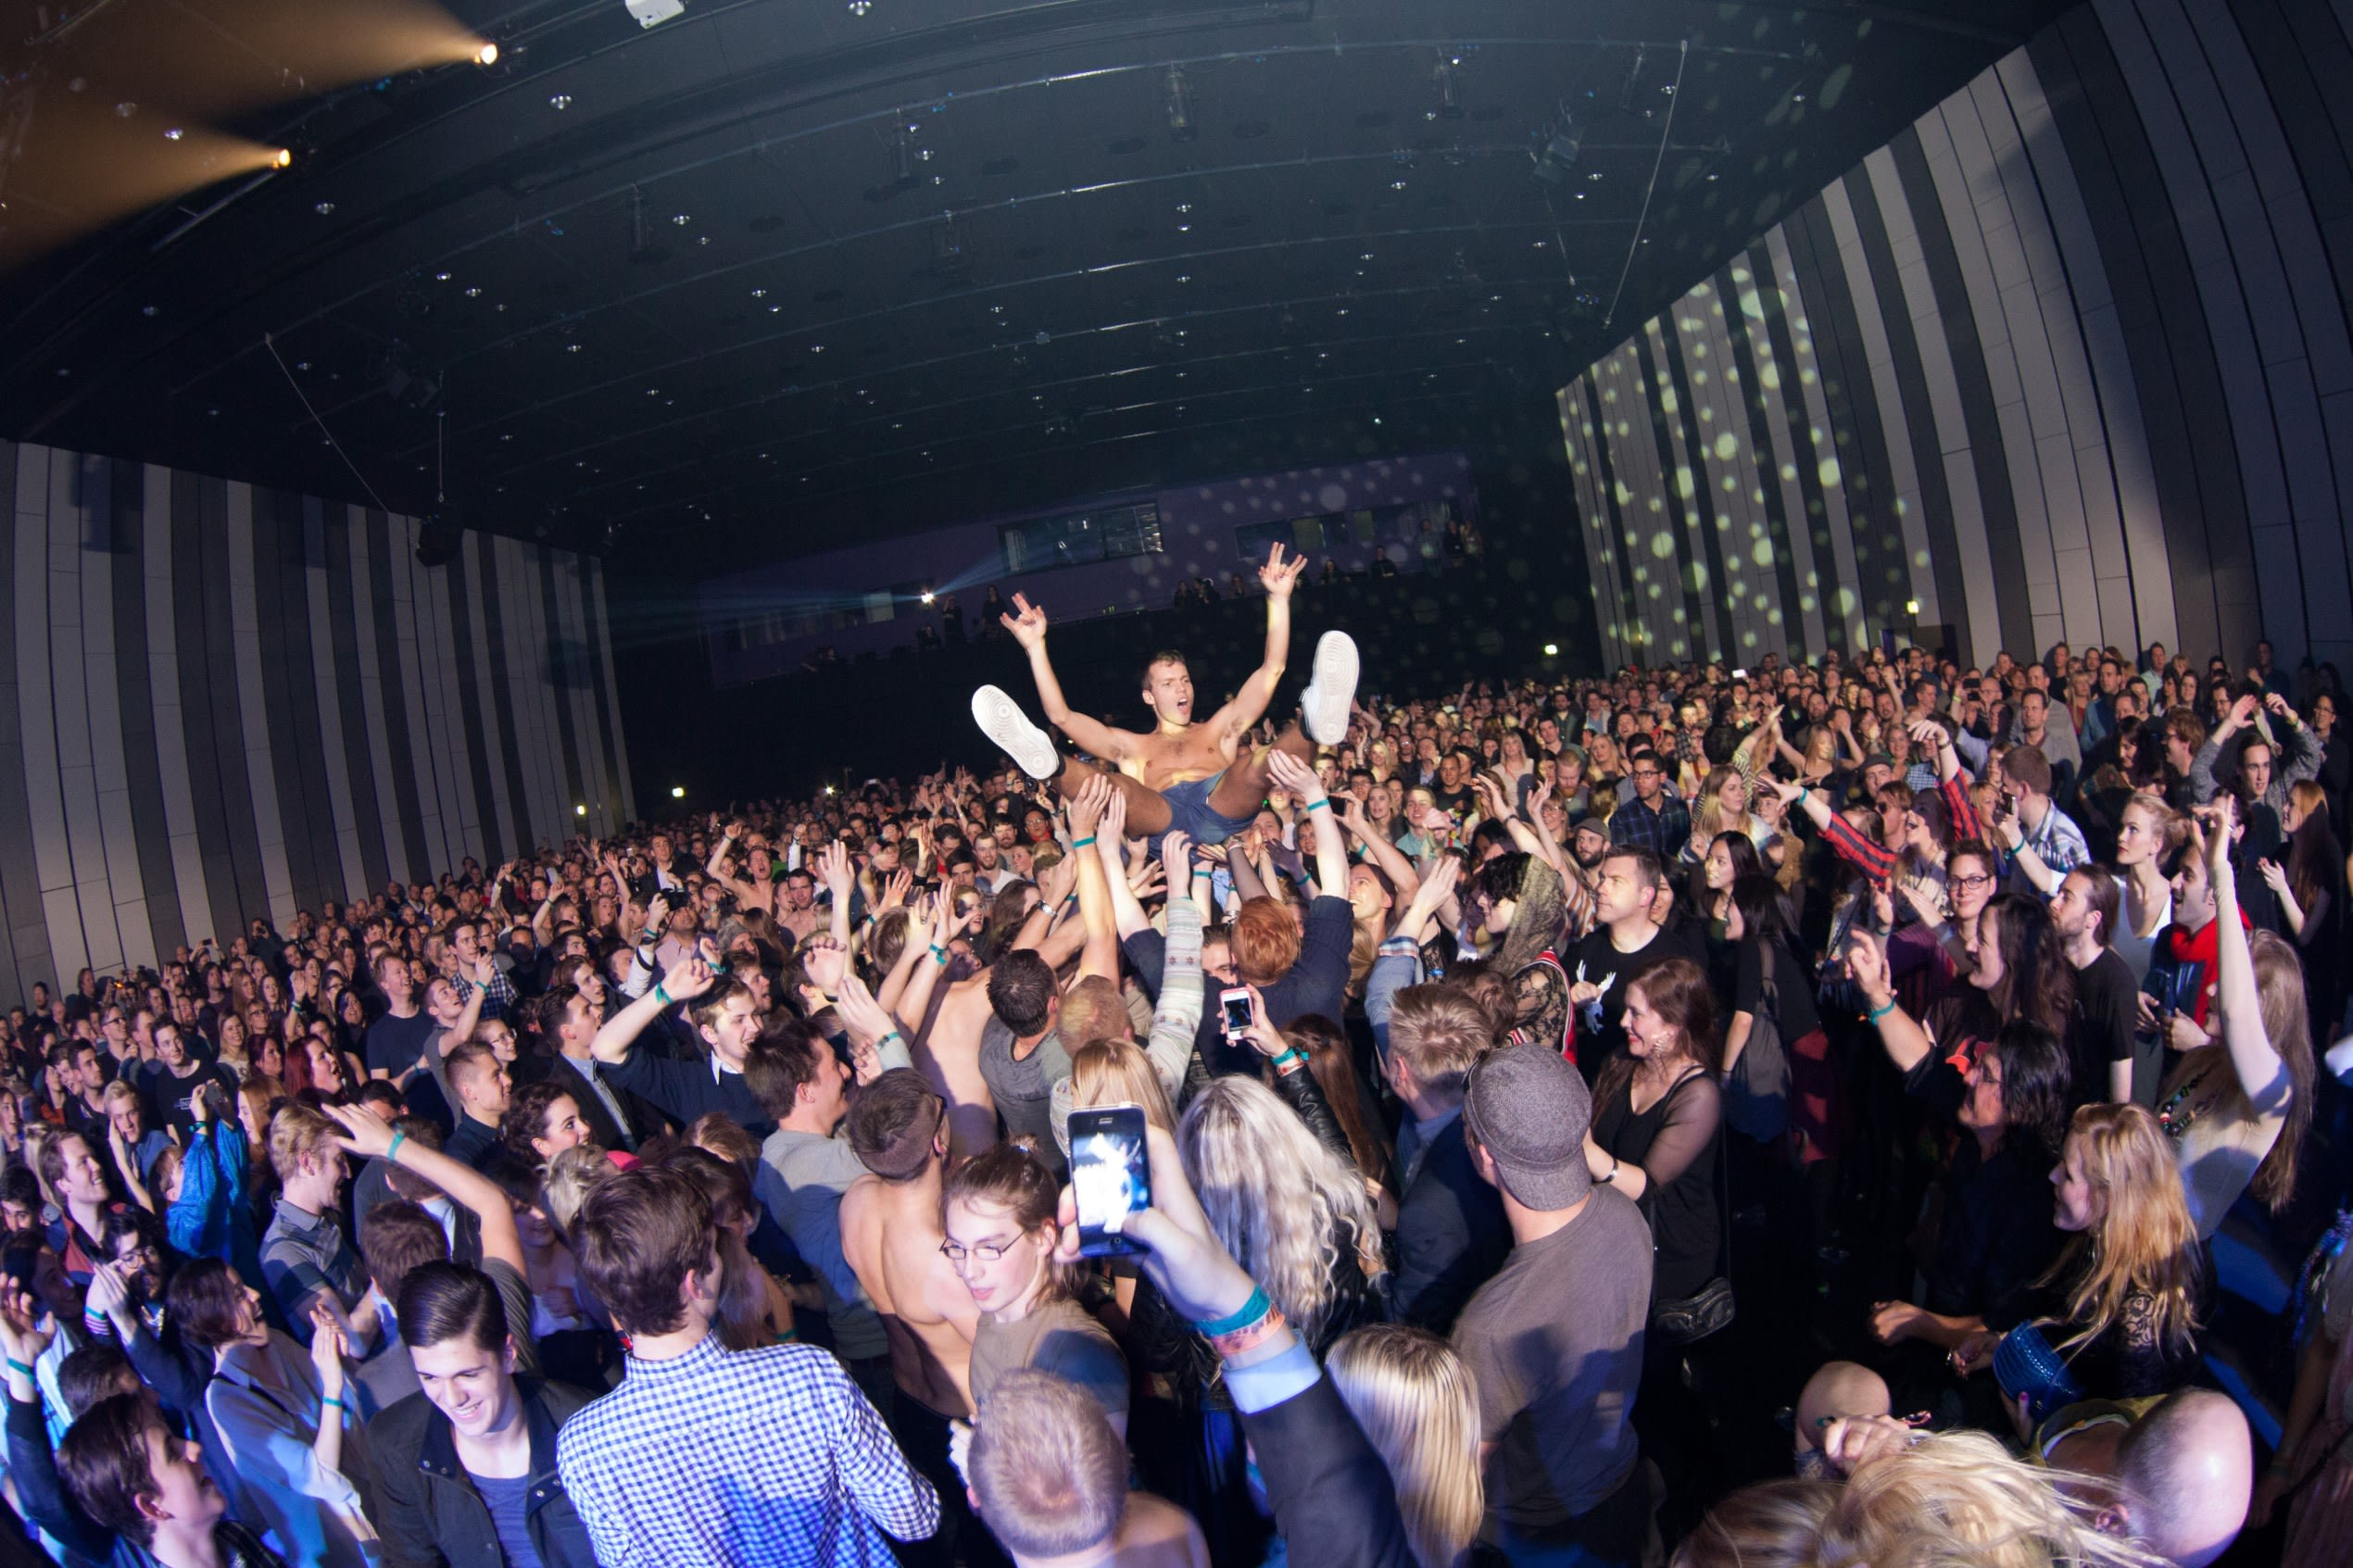 a lively crowd lifts somebody up above head and allows them to crowdsurf